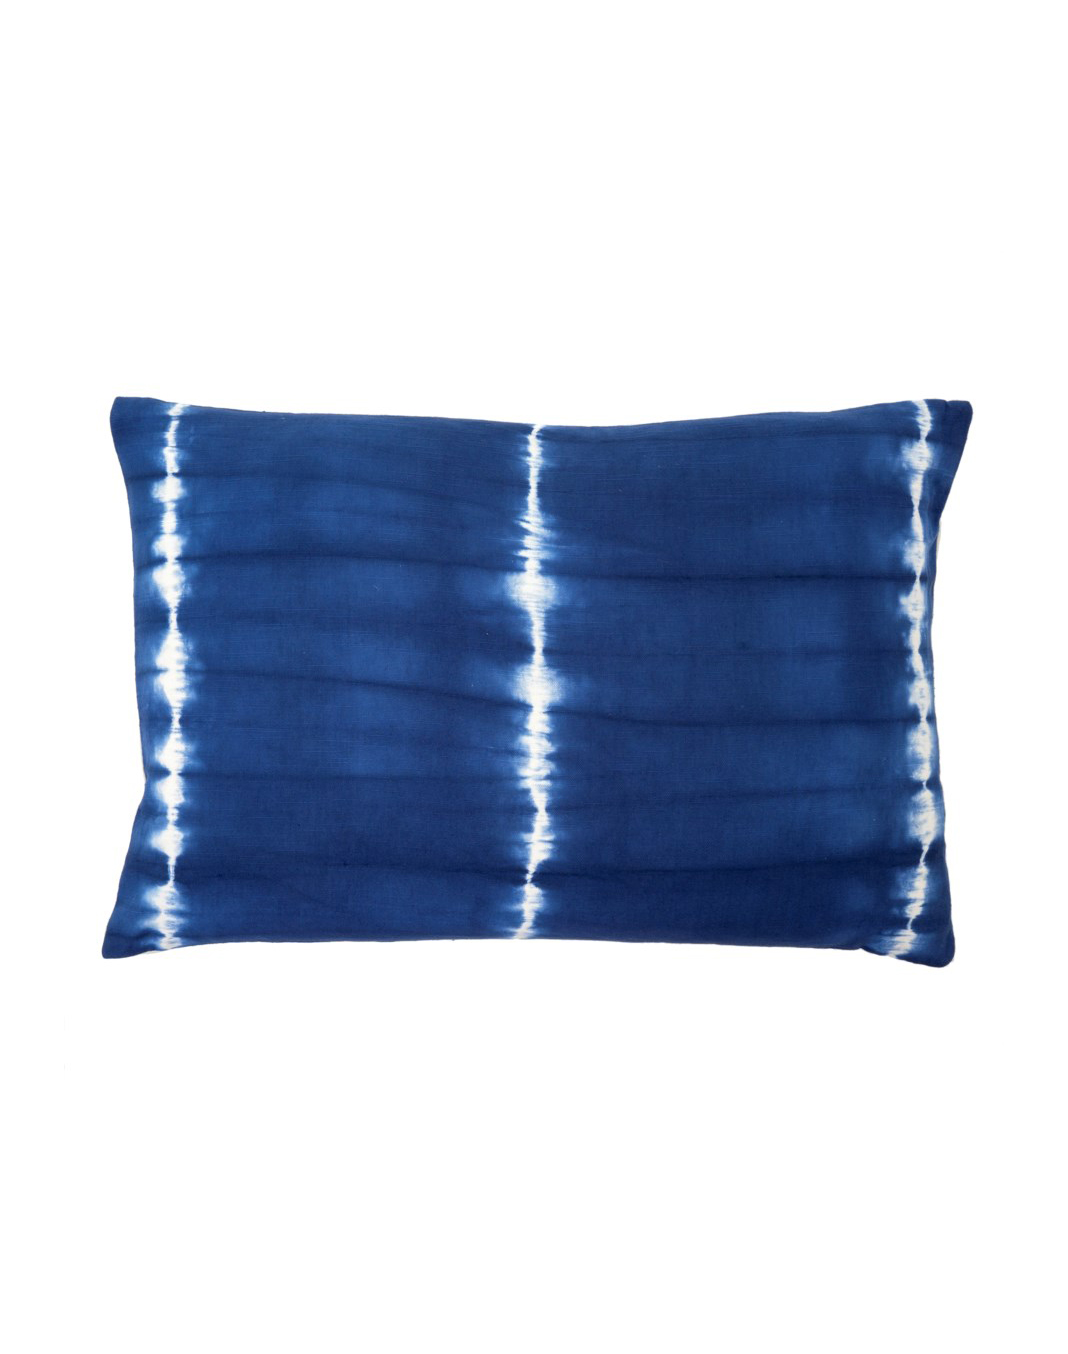 Dark Indigo Shibori Pillow 16x24